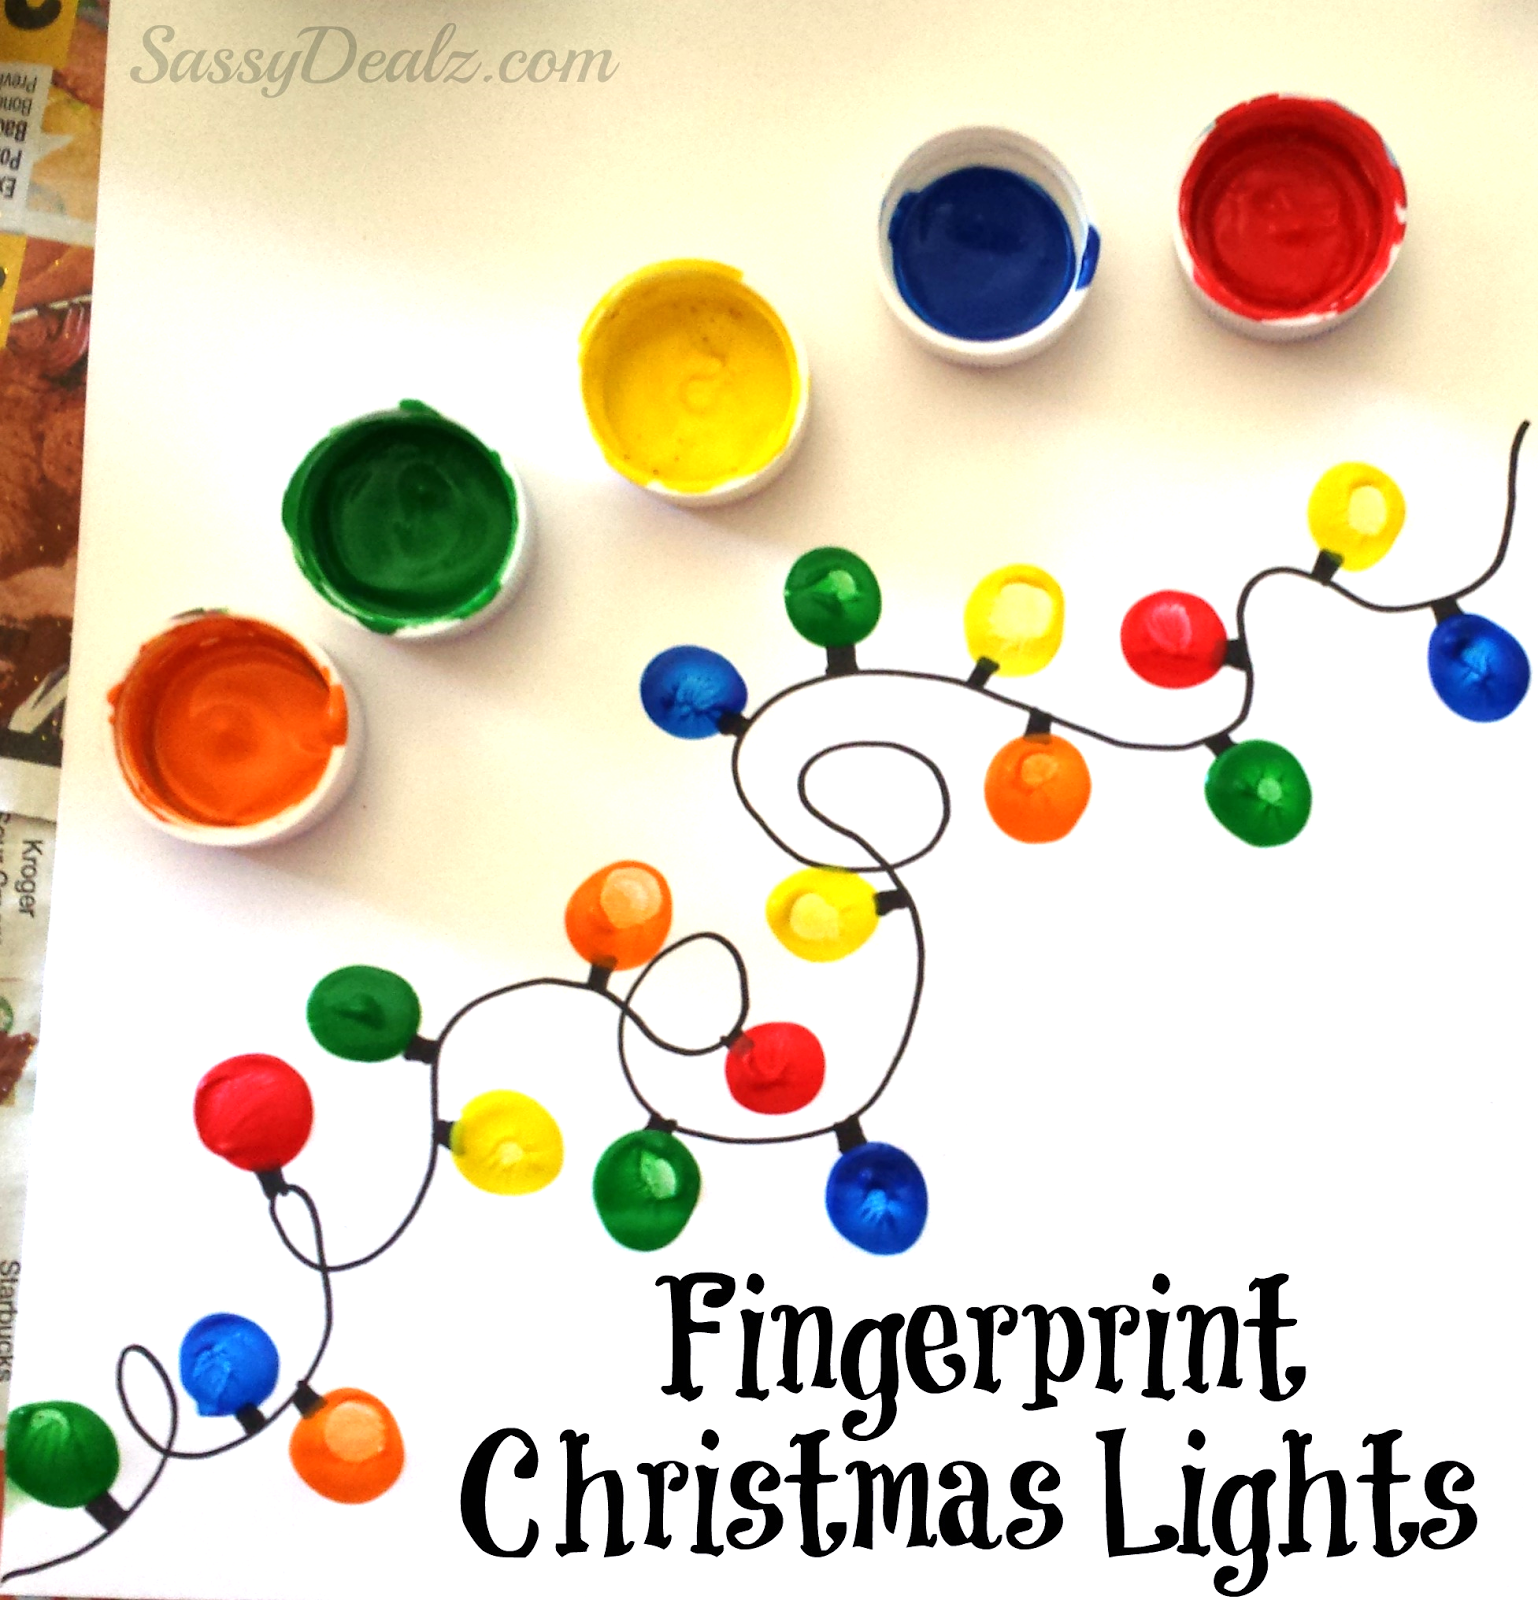 Fun Christmas crafts to do with kids.